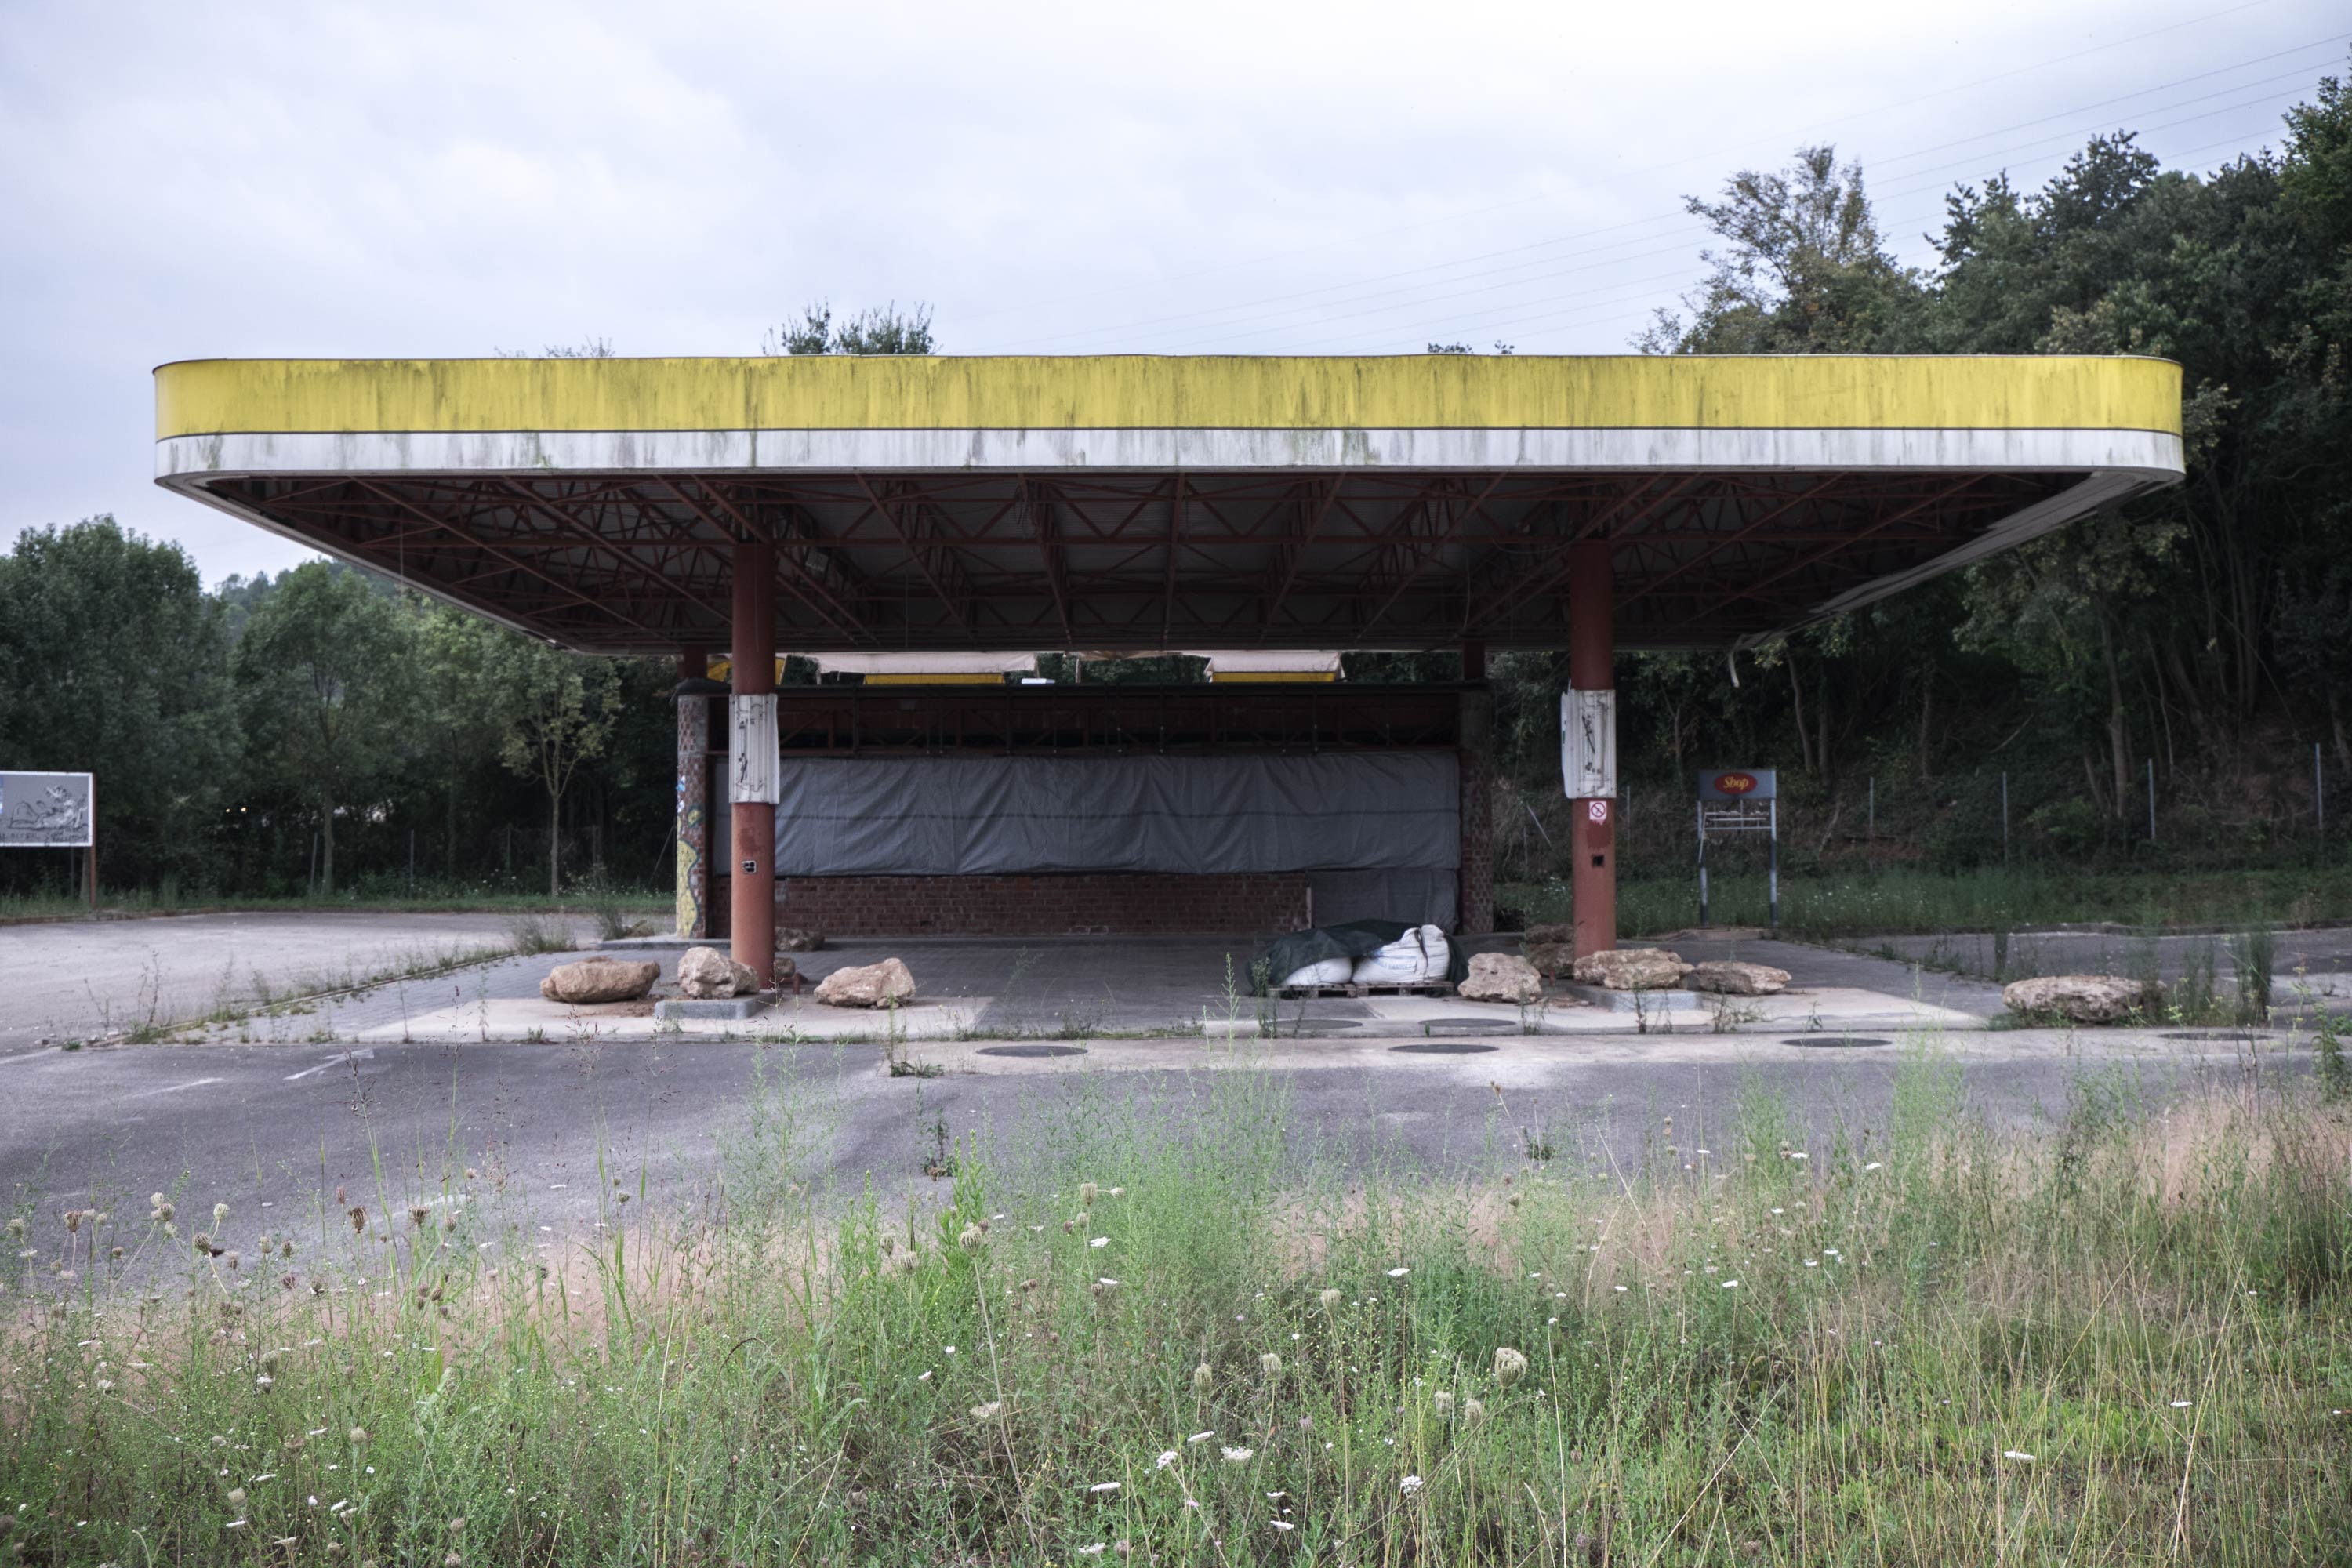 An abandoned gas station in the middle of nowhere